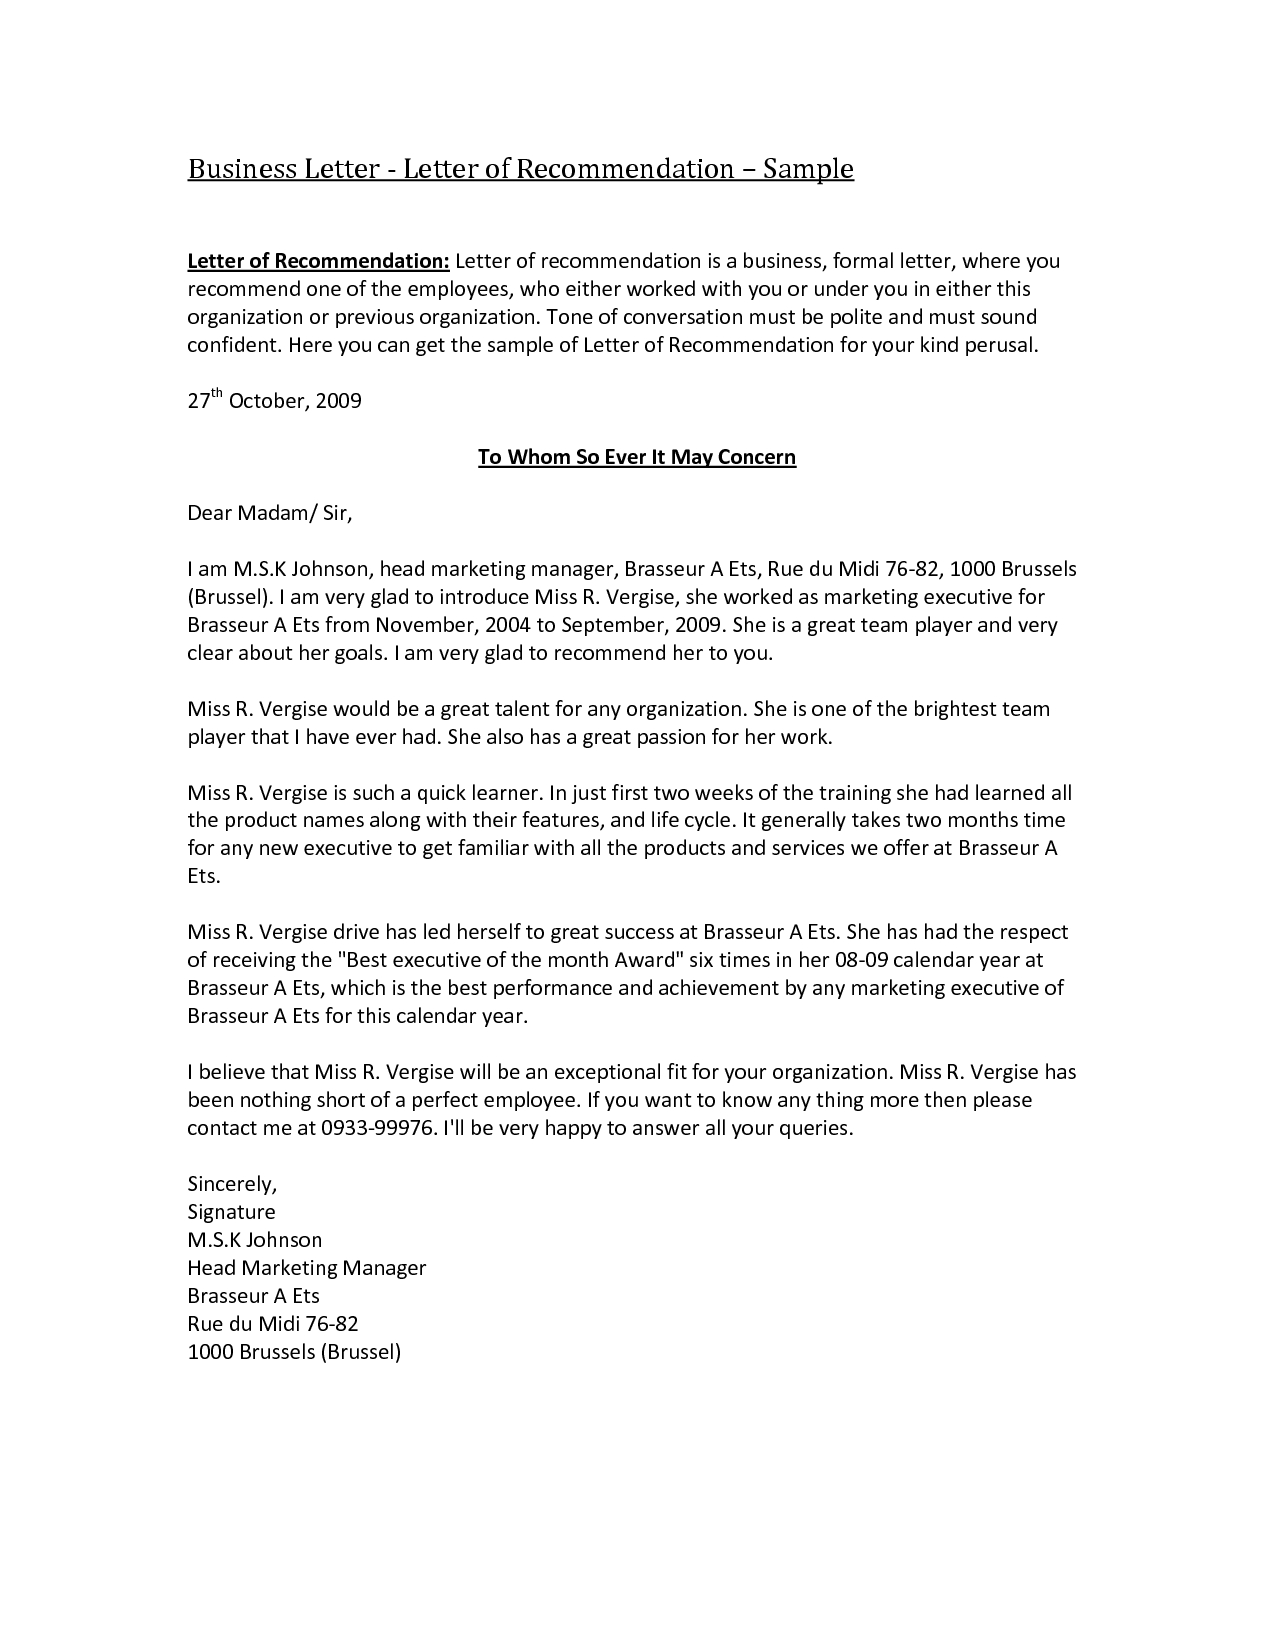 Business Reference Letter Template - Business Re Mendation Letter Template Acurnamedia